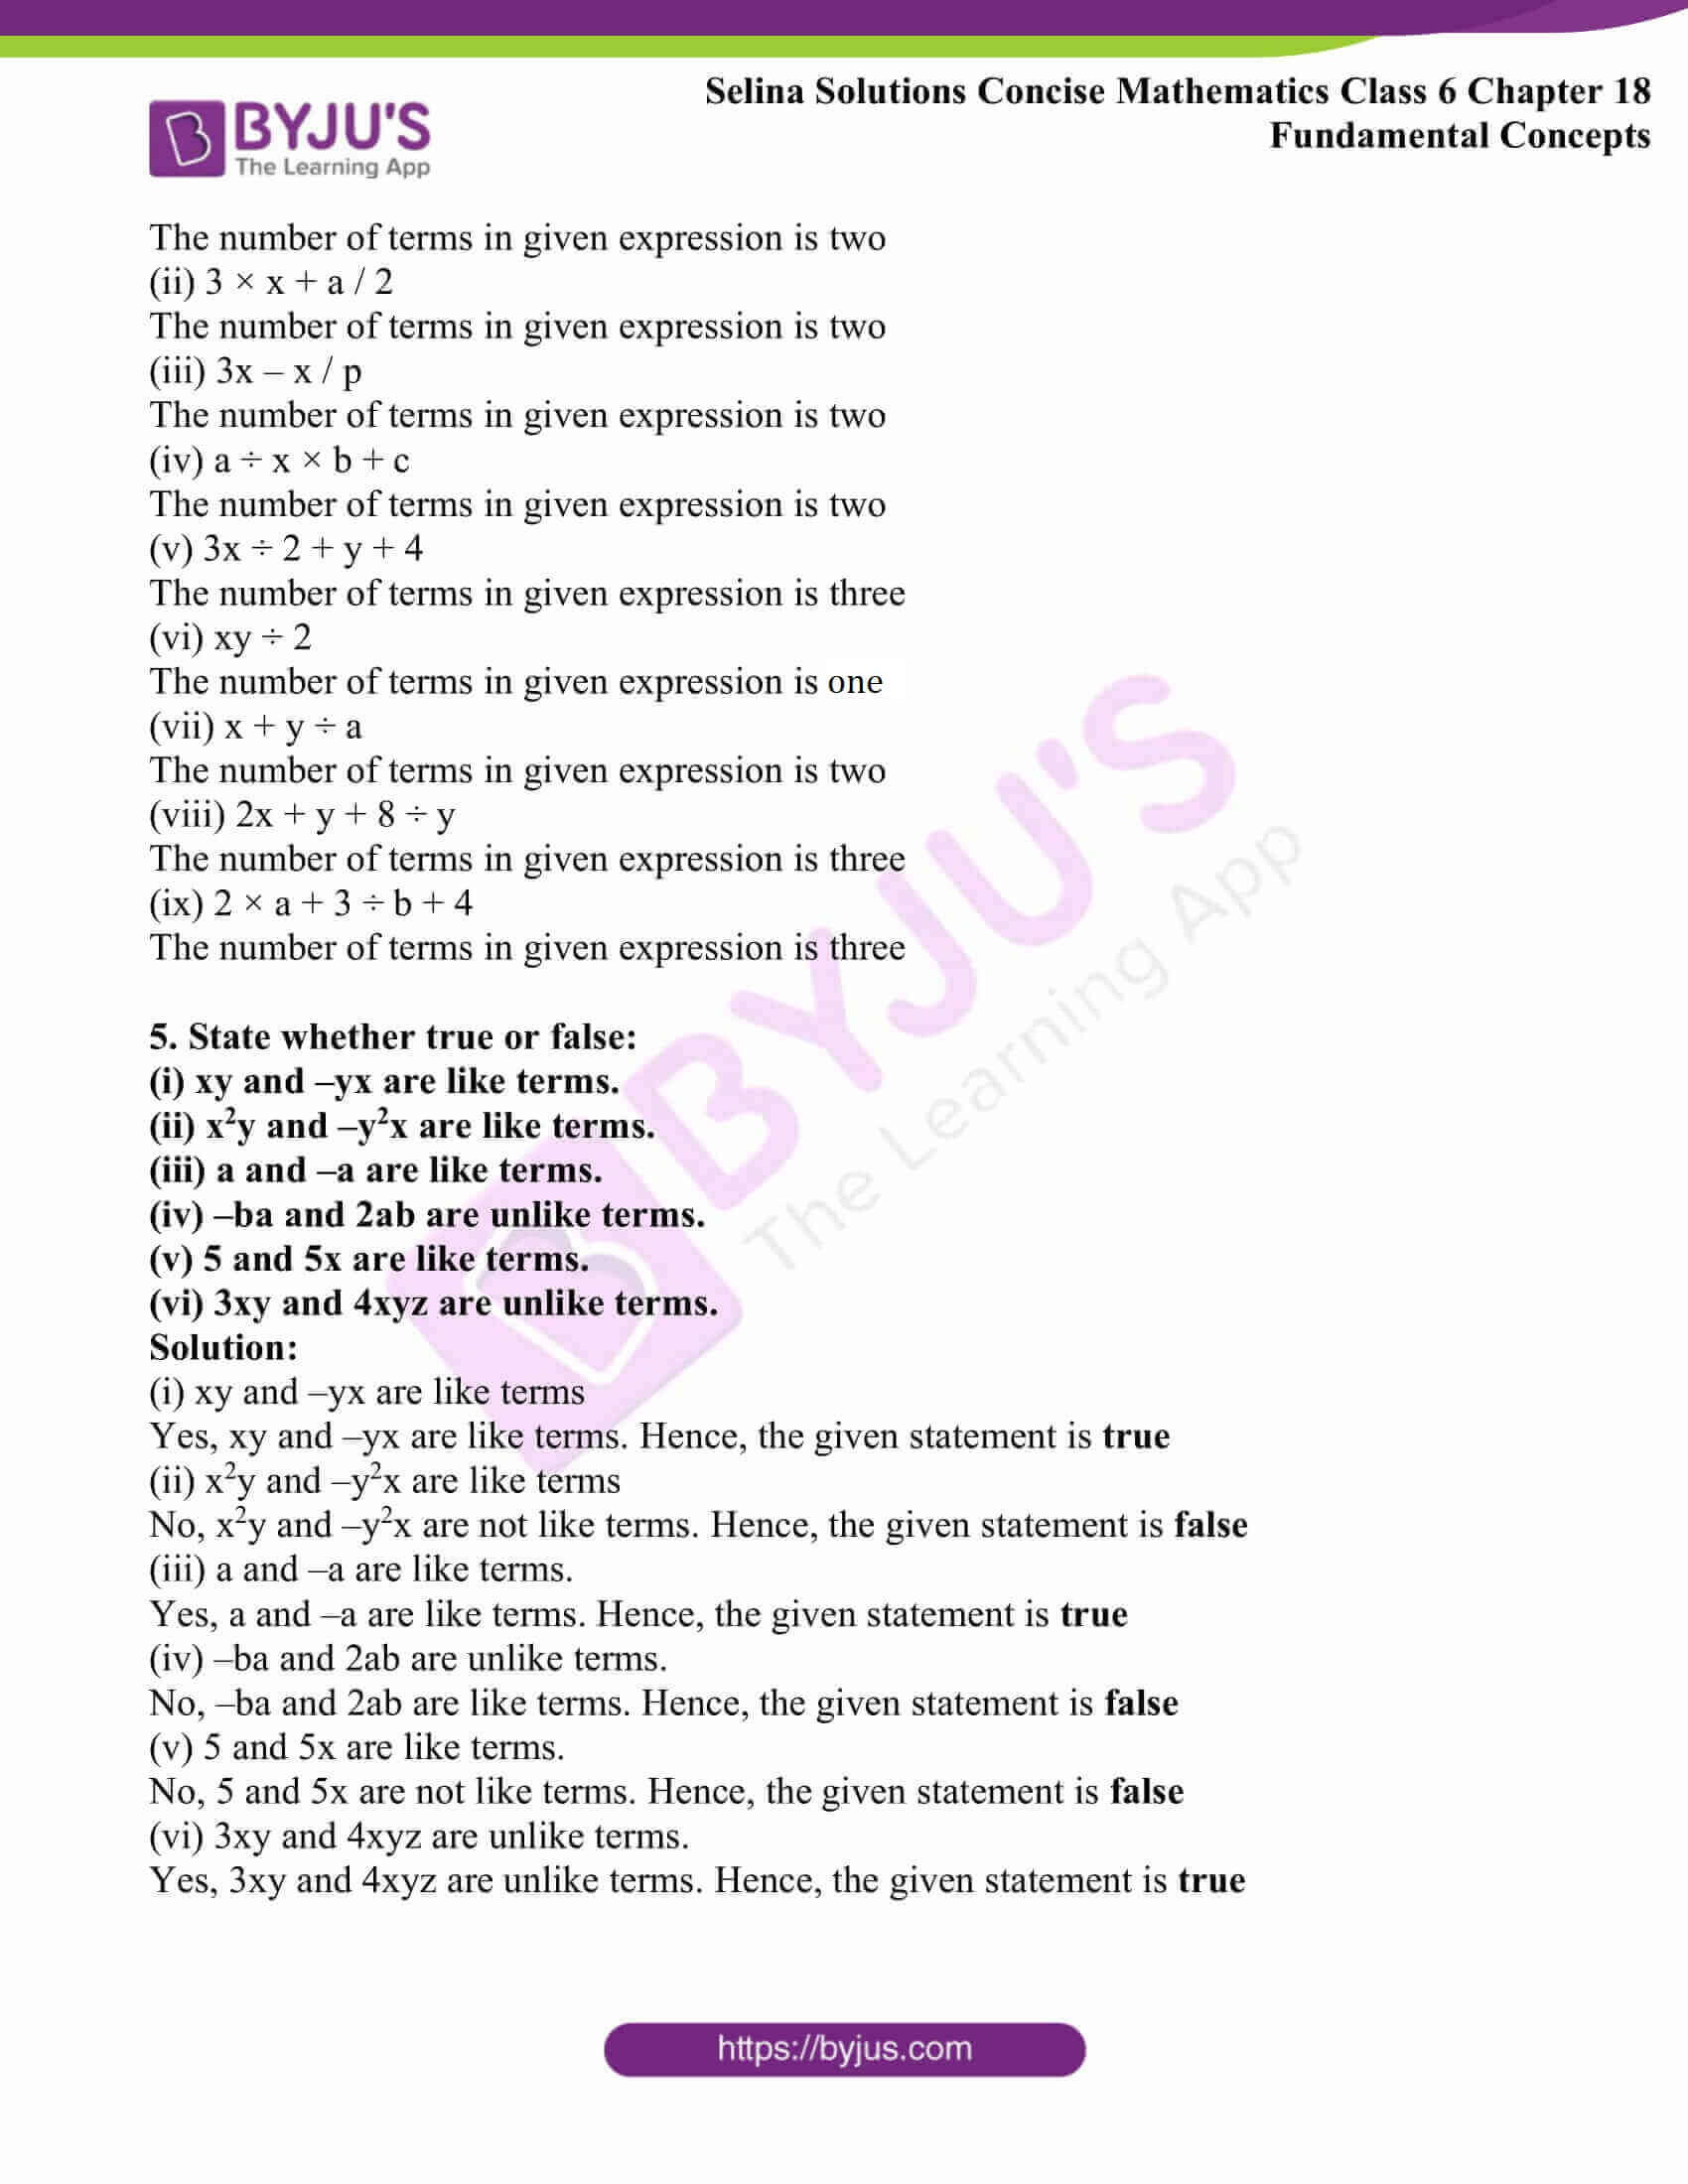 selina solutions concise math class 6 chapter 18 ex b 3